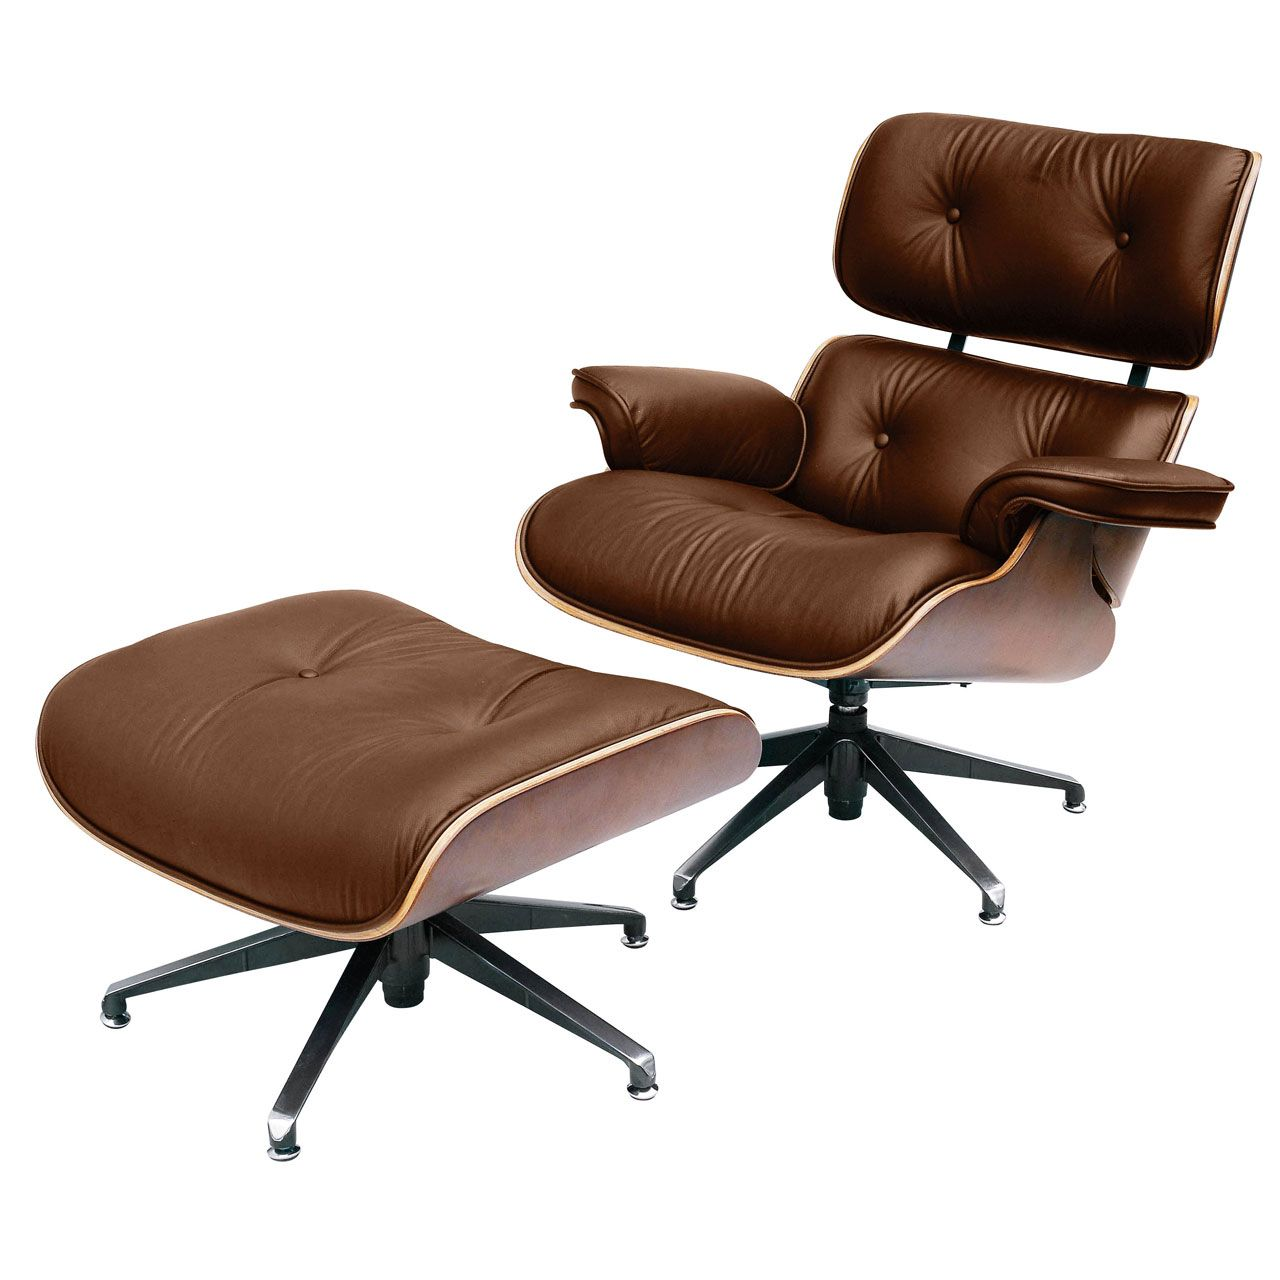 leather swivel recliner chair and stool melissa doug high smart scooters is an online shop to buy electric riser